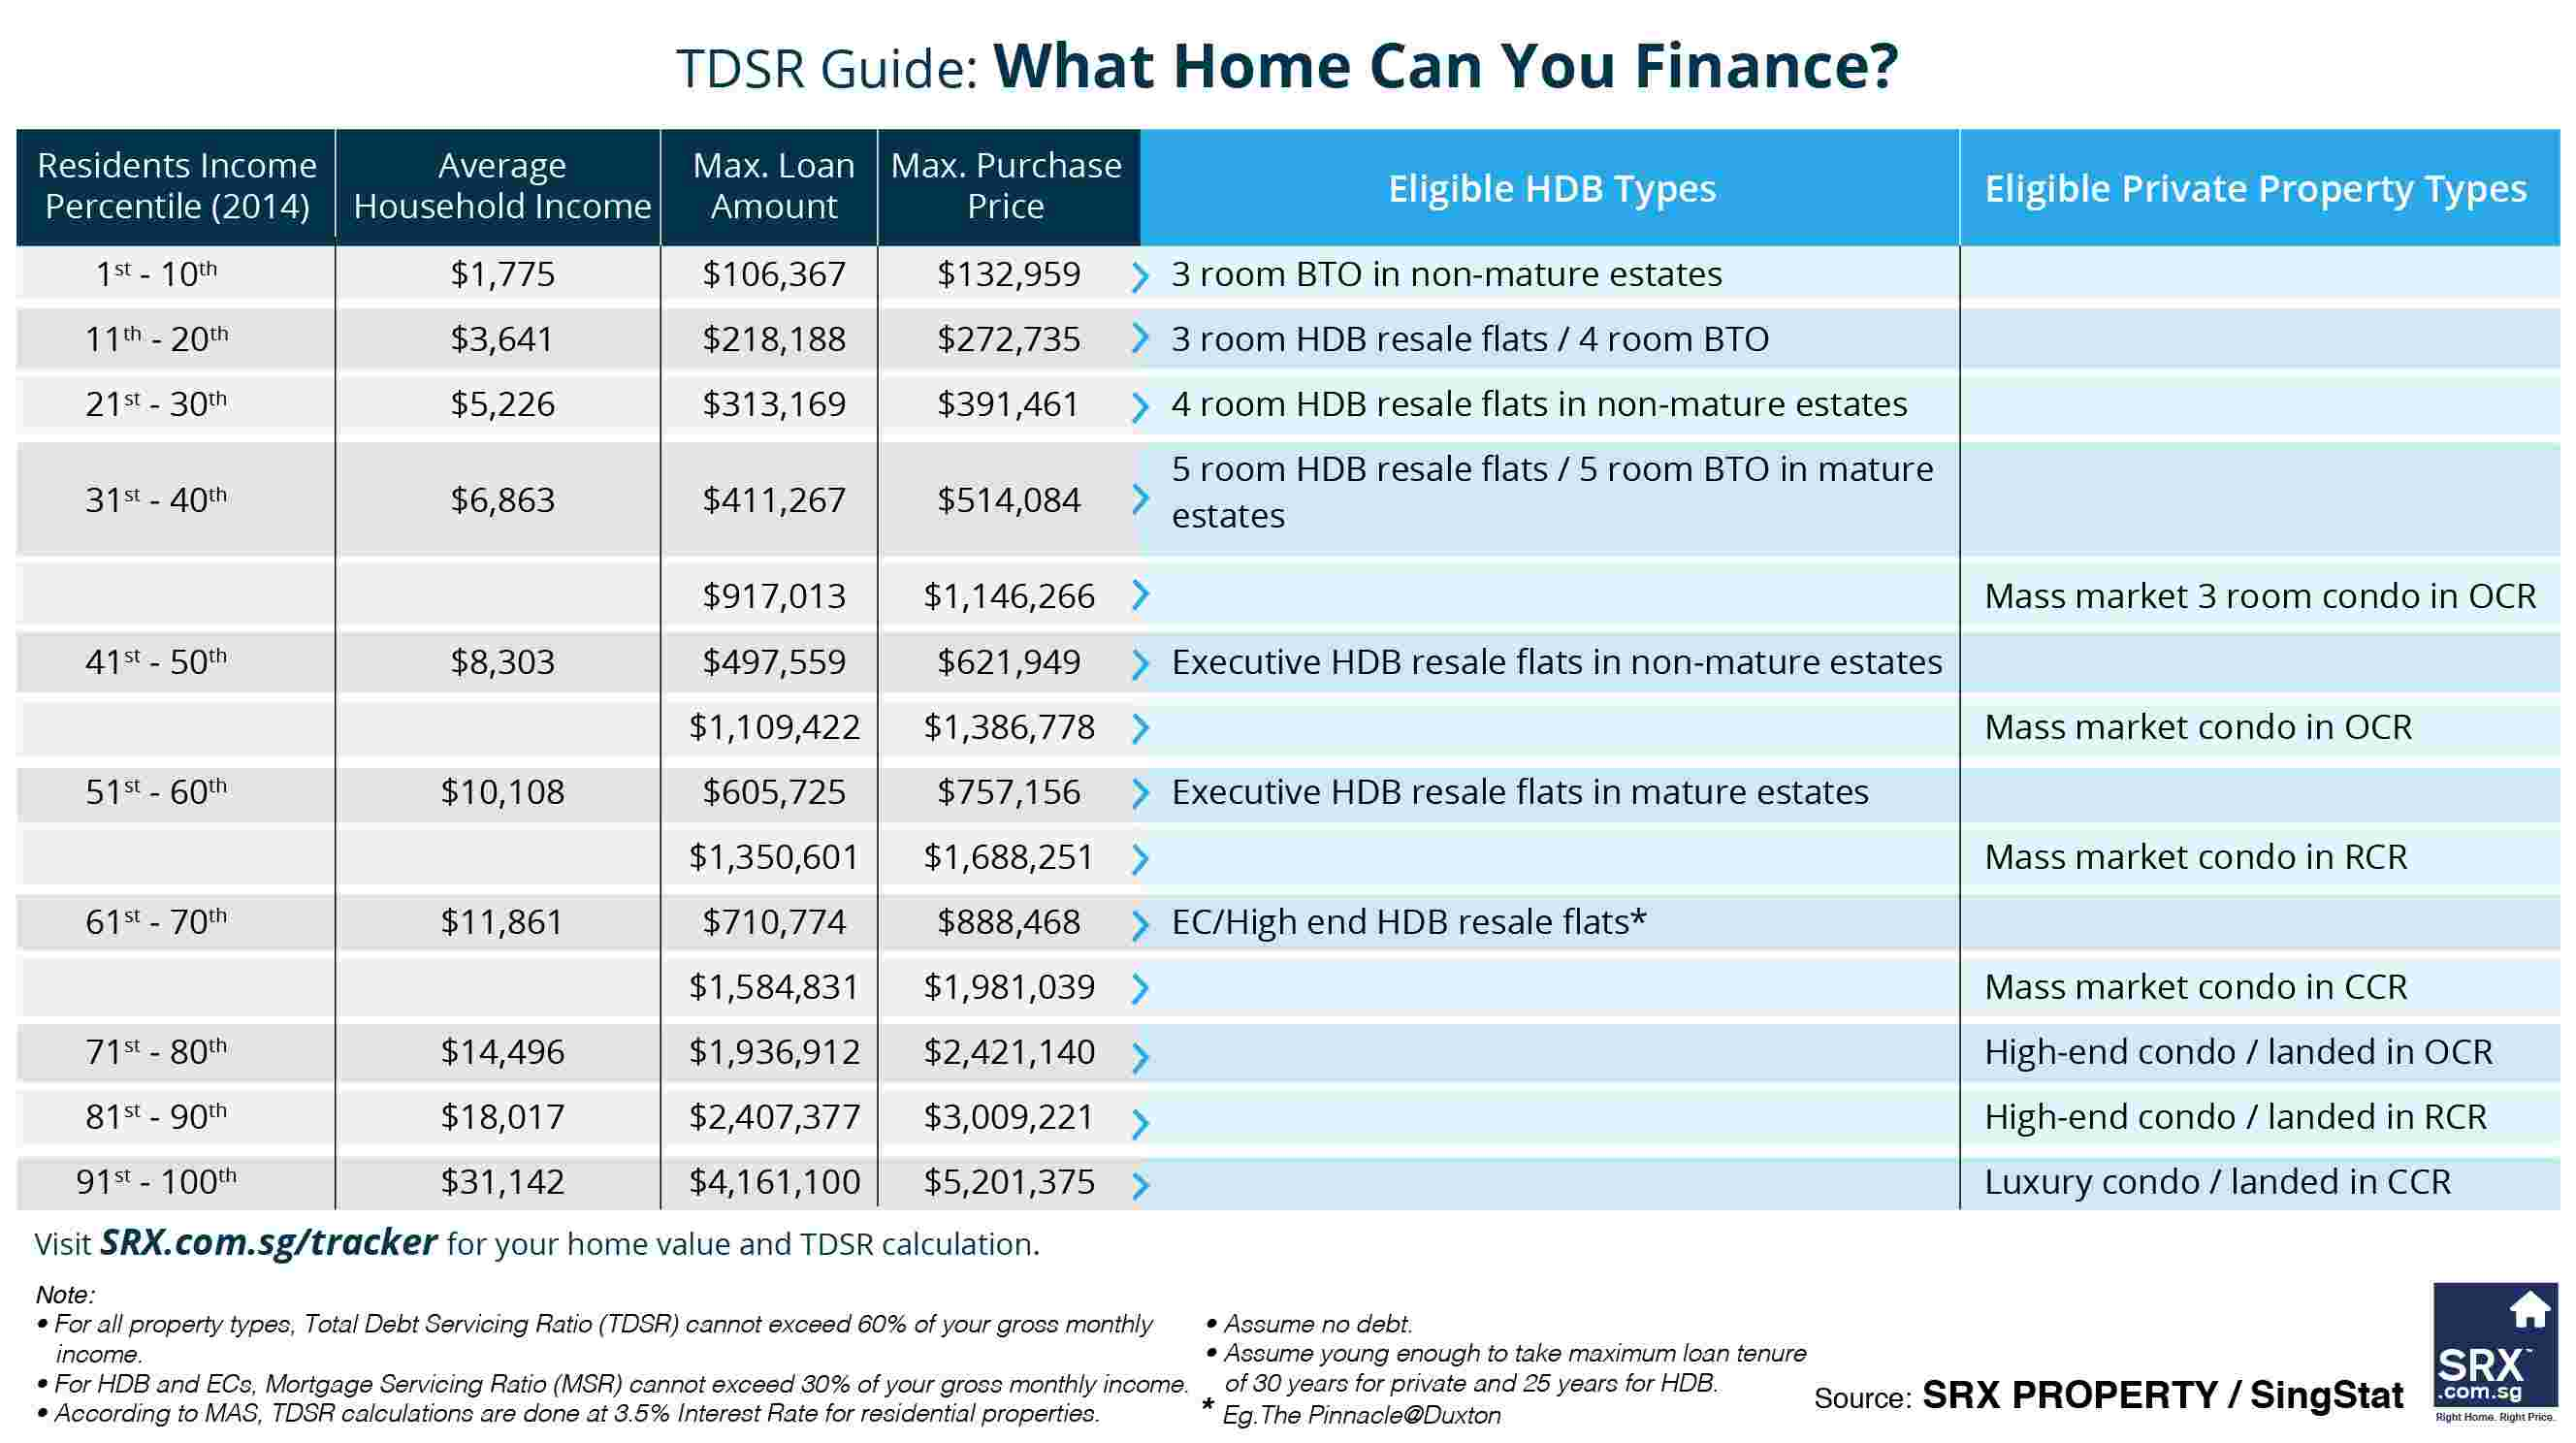 Total Debt Servicing Ratio (TDSR) Guide by SRX